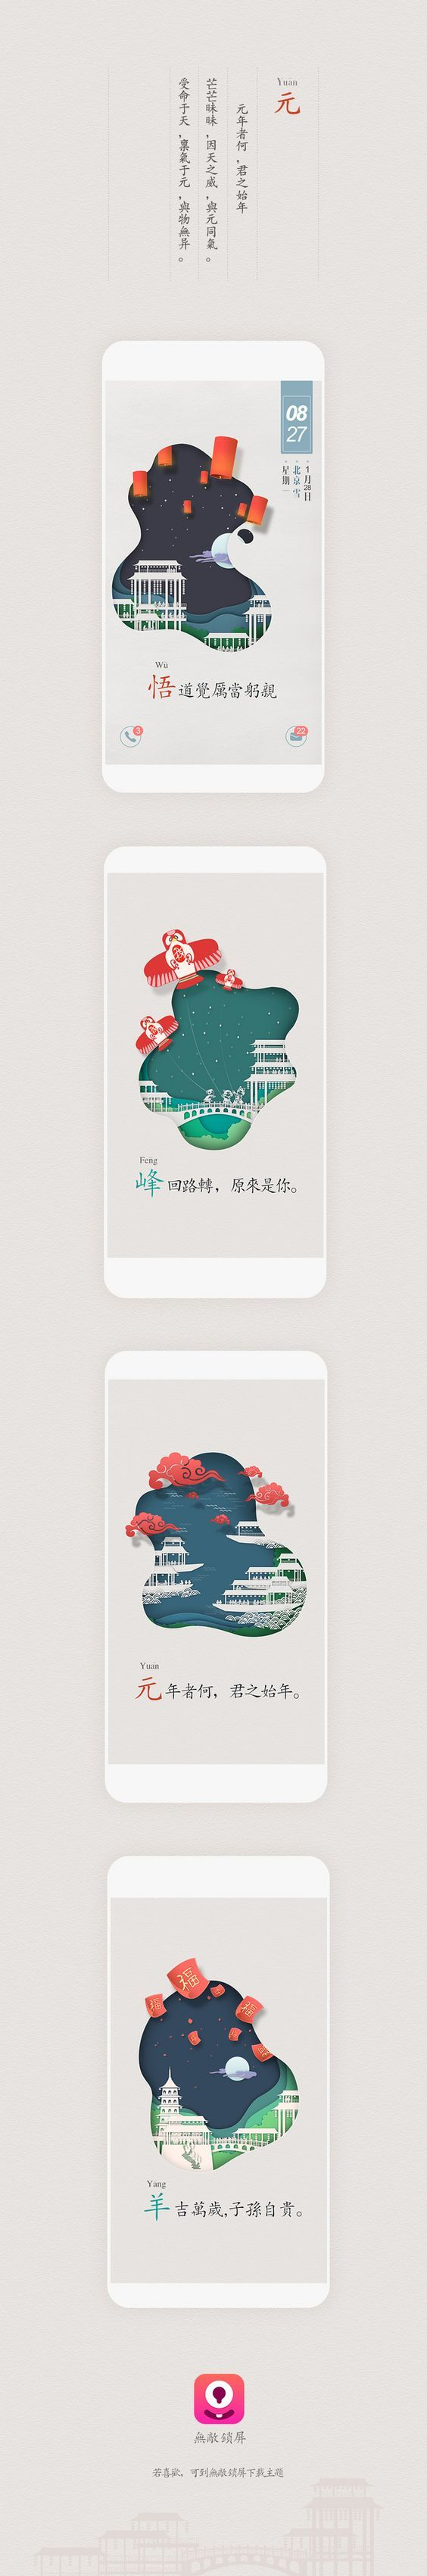 New Year greeting | Mobile / APP interface | GUI | ... @ UI Designer - Zhou Xiaofeng collected app works Packaging & Products (2766 figure) _ petals UI / UX: